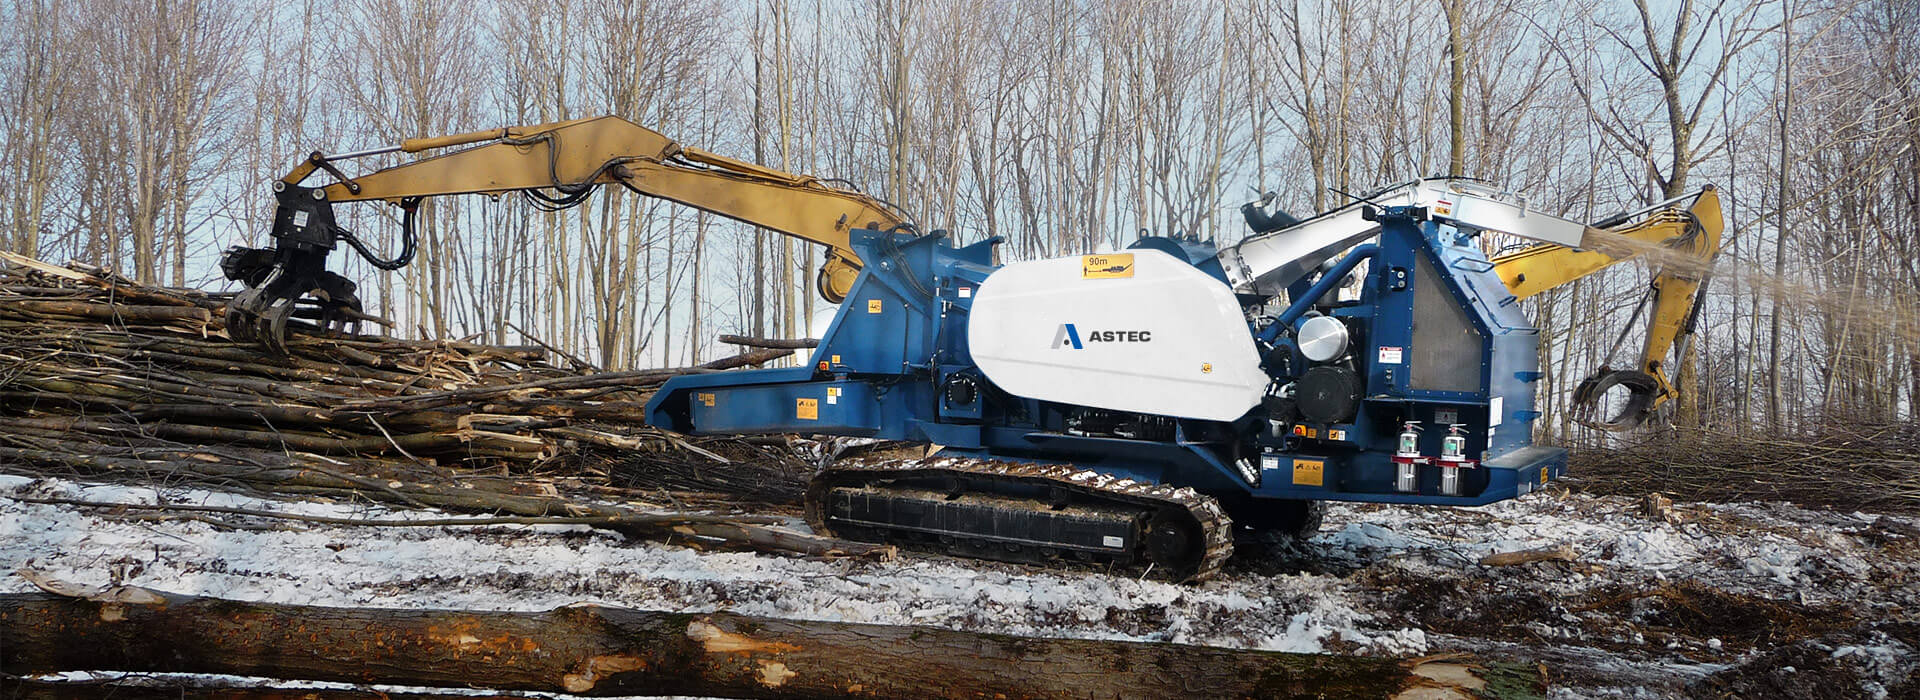 Peterson 4310B Highwalker Drum Chipper land clearing a right-of-way in the snow.